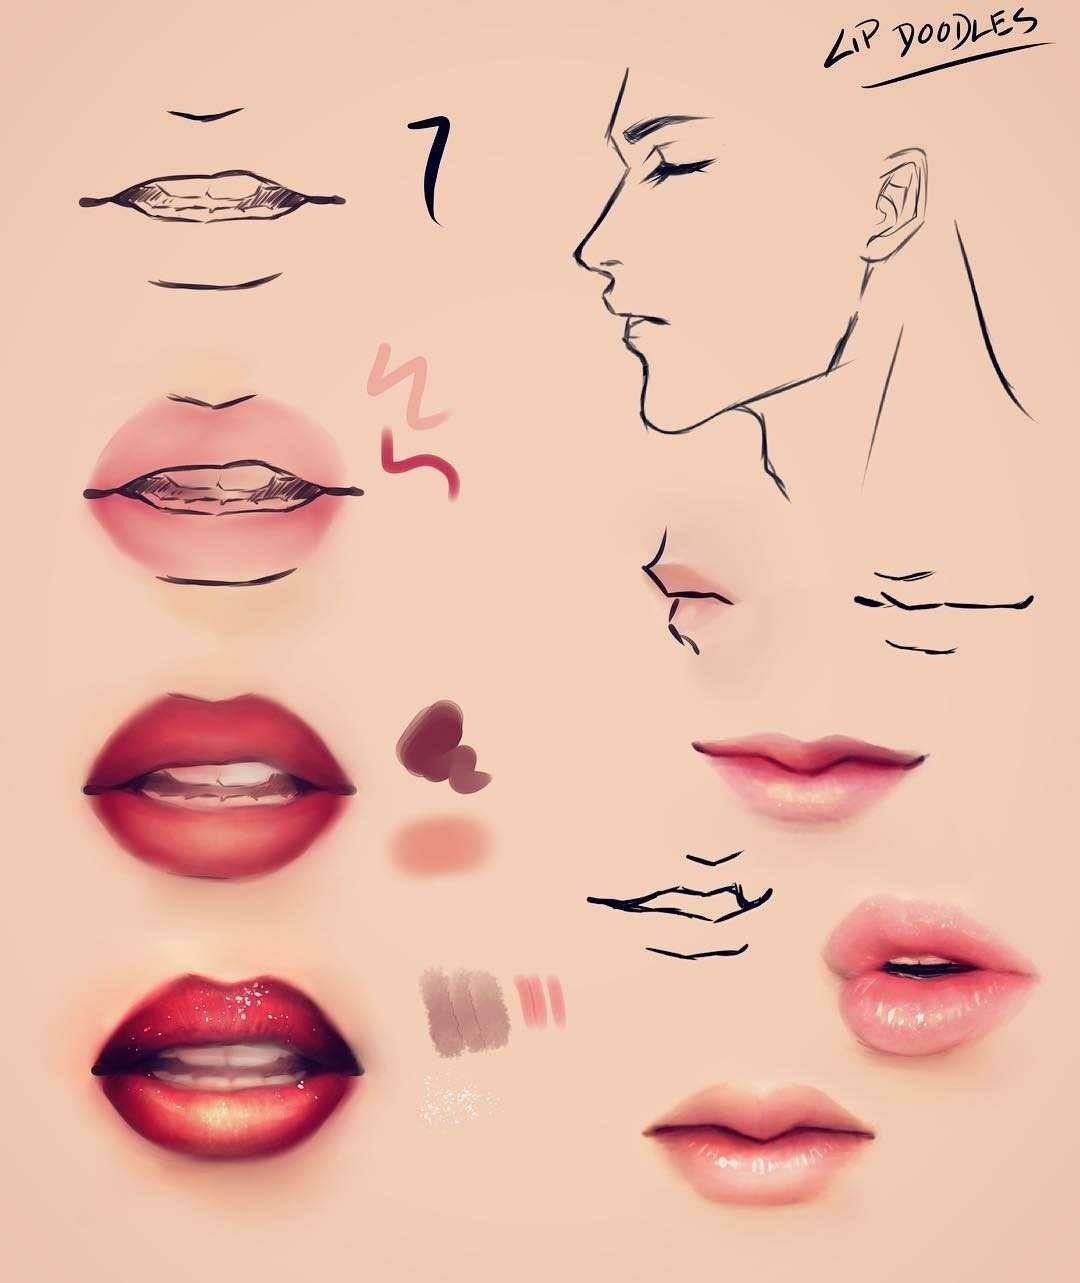 Pin by alanna budris on references lips drawing digital